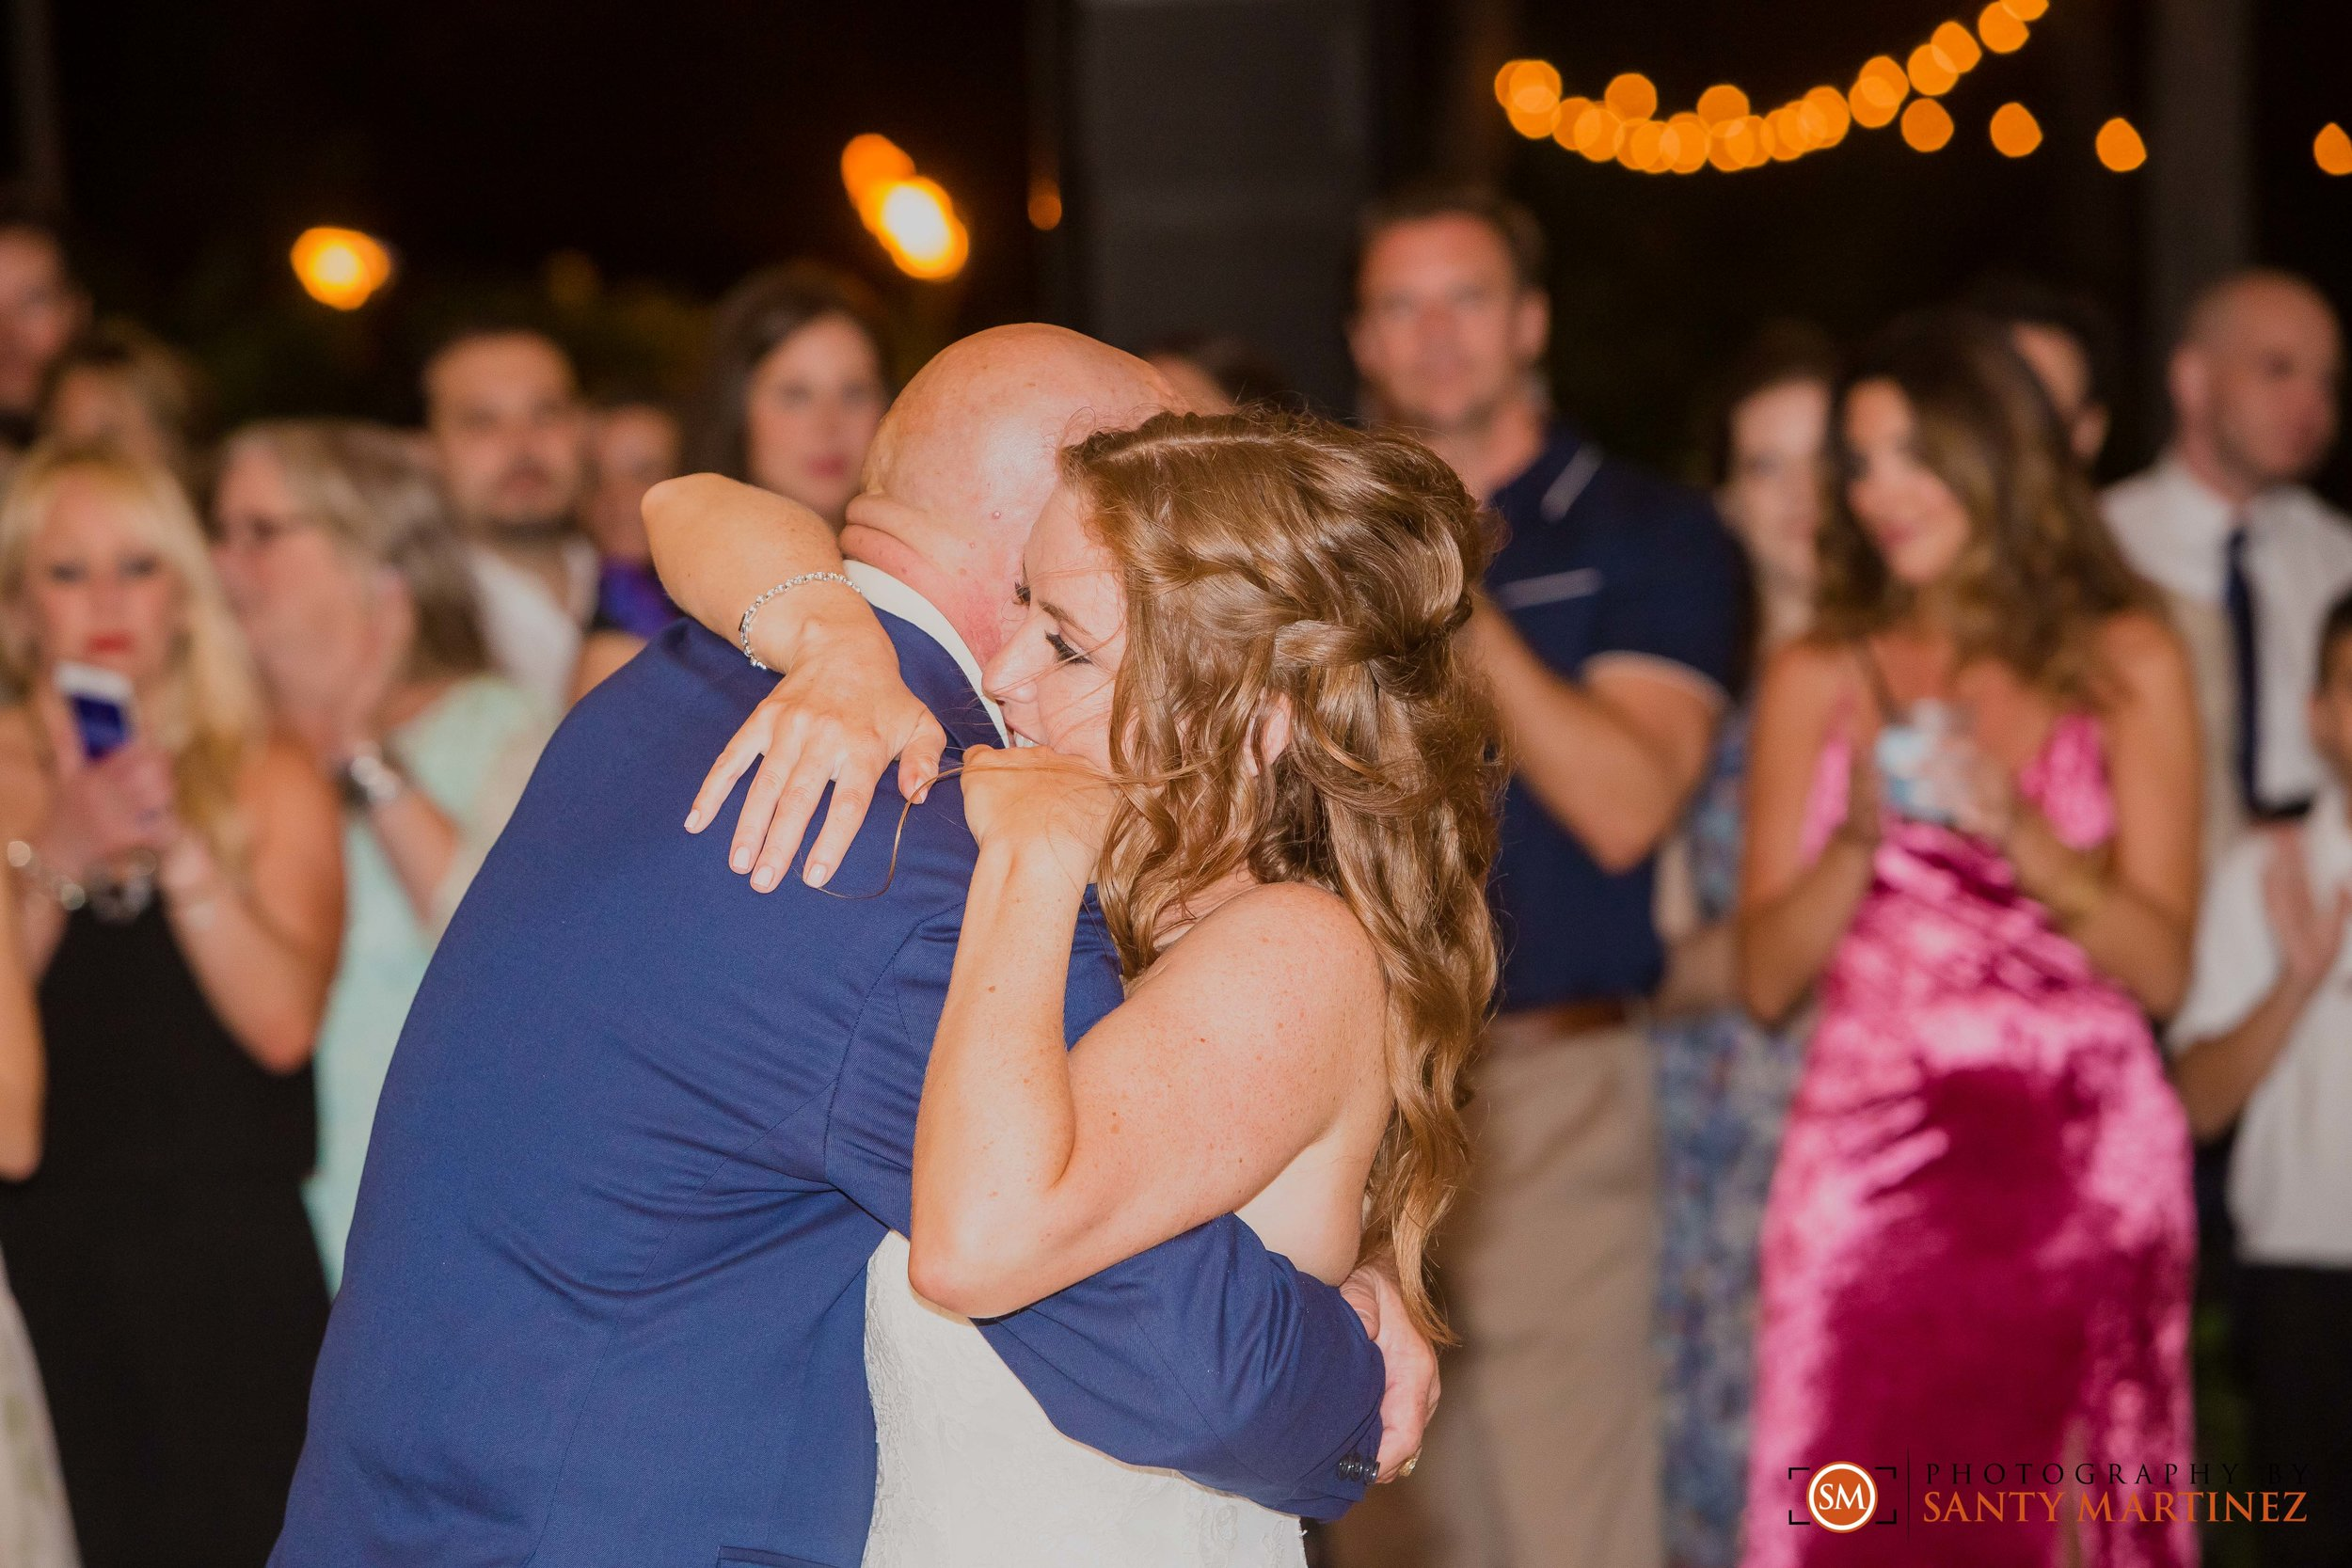 Postcard Inn Islamorada Wedding - Photography by Santy Martinez-1405.jpg